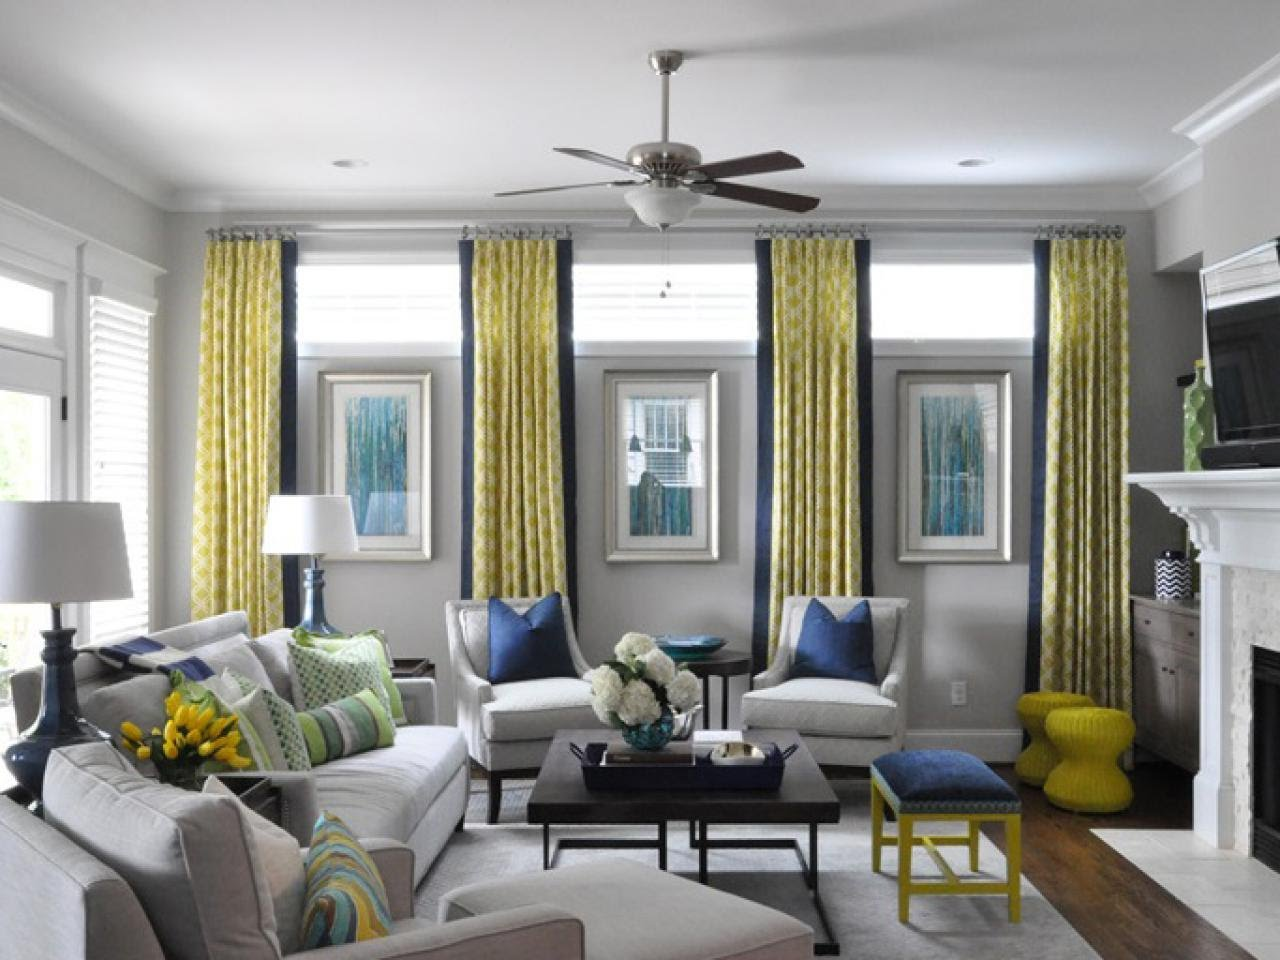 window treatments ideas awesome window treatment ideas for